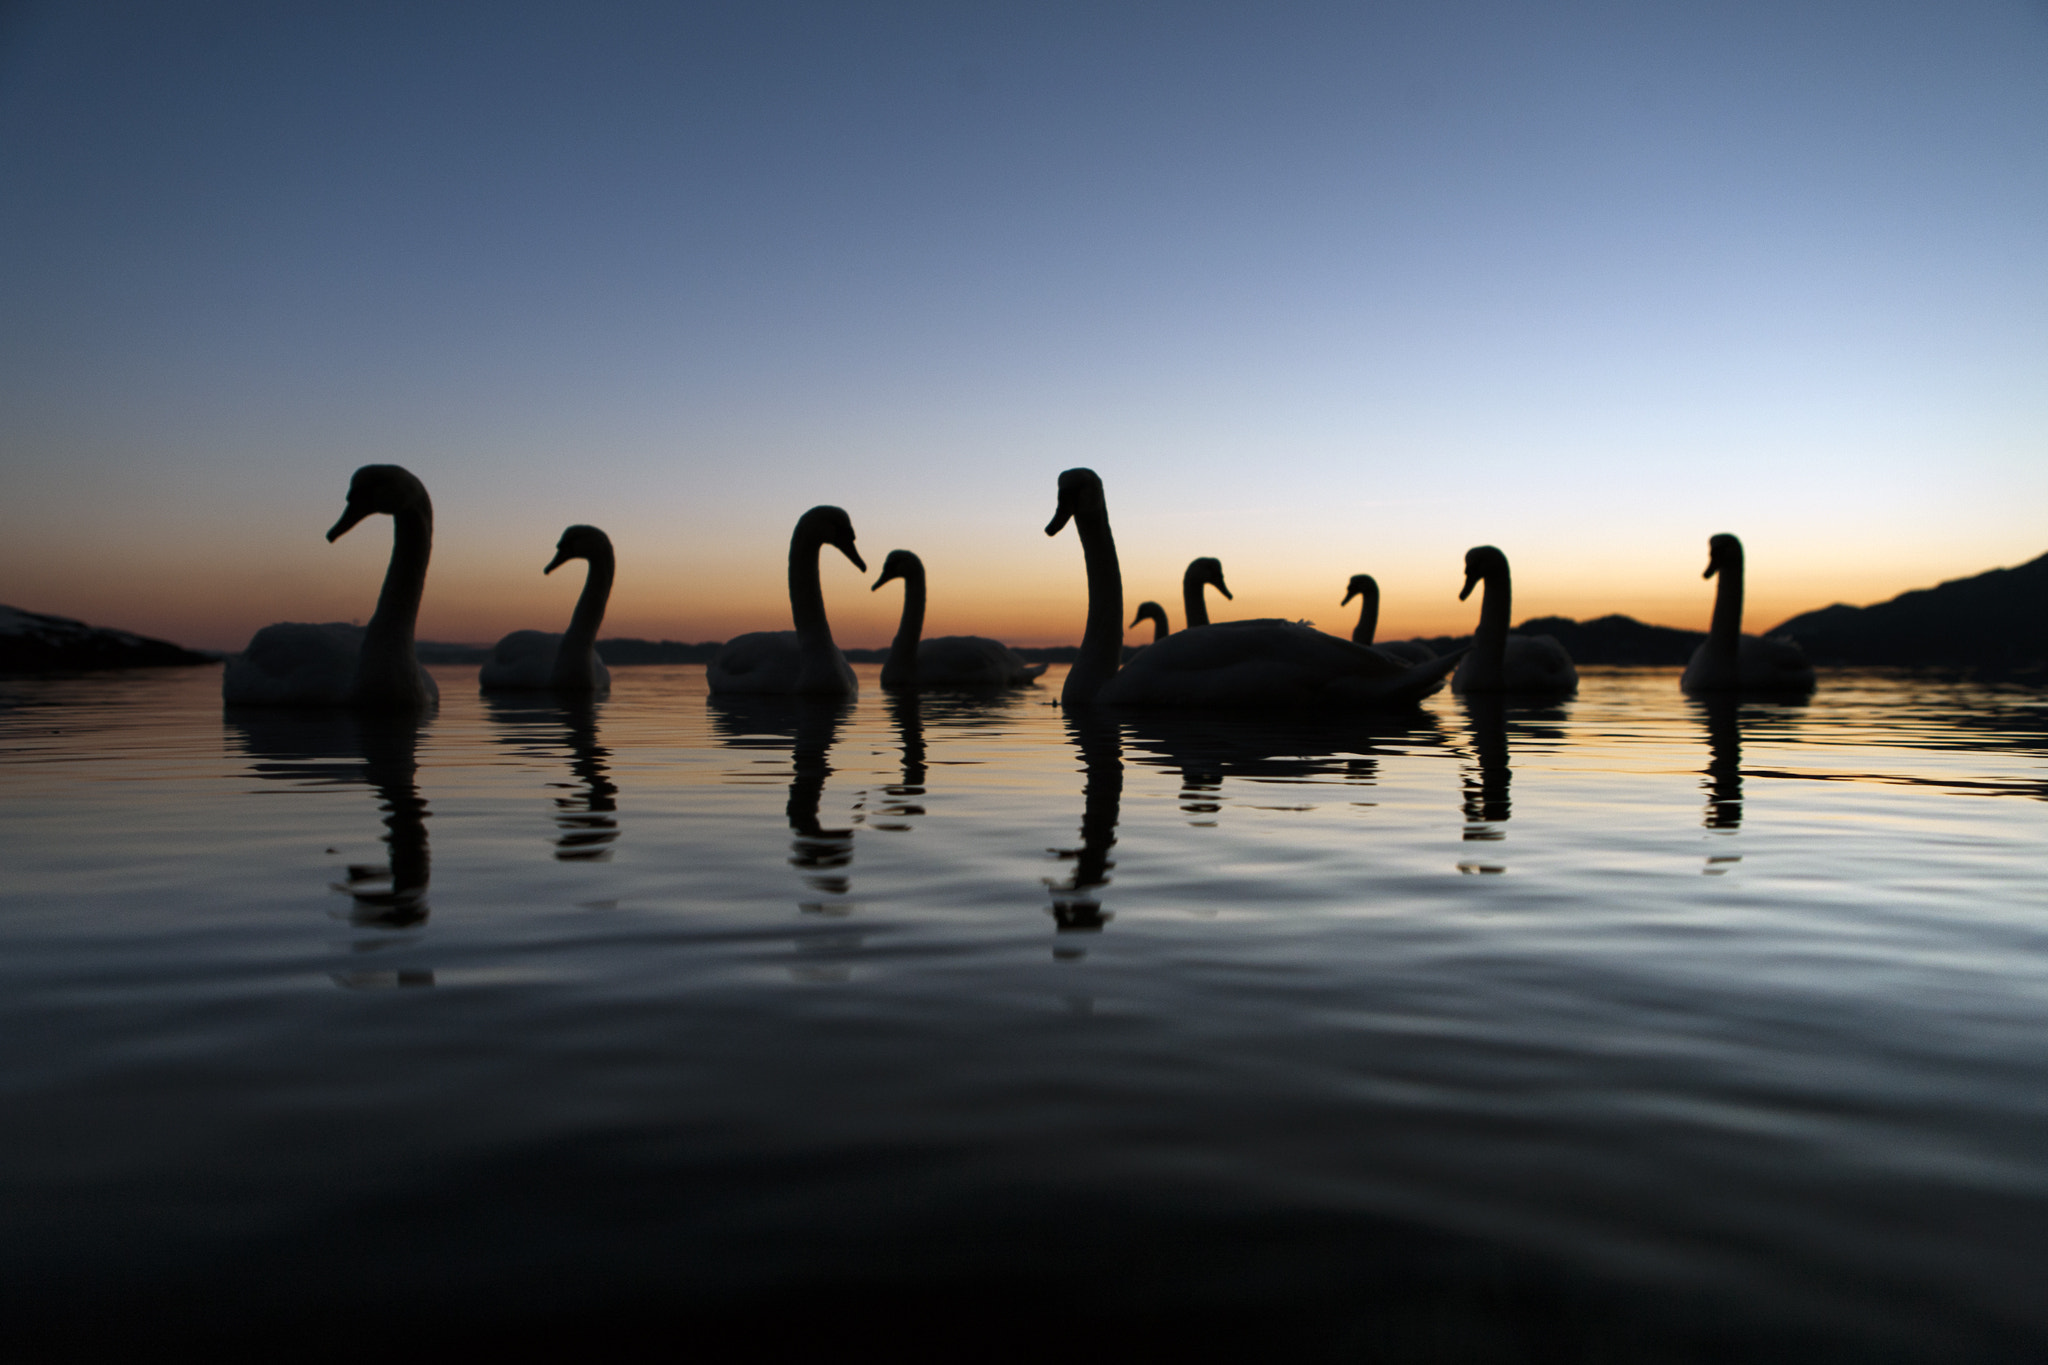 Photograph Swanlake by Eivind Hagerup on 500px